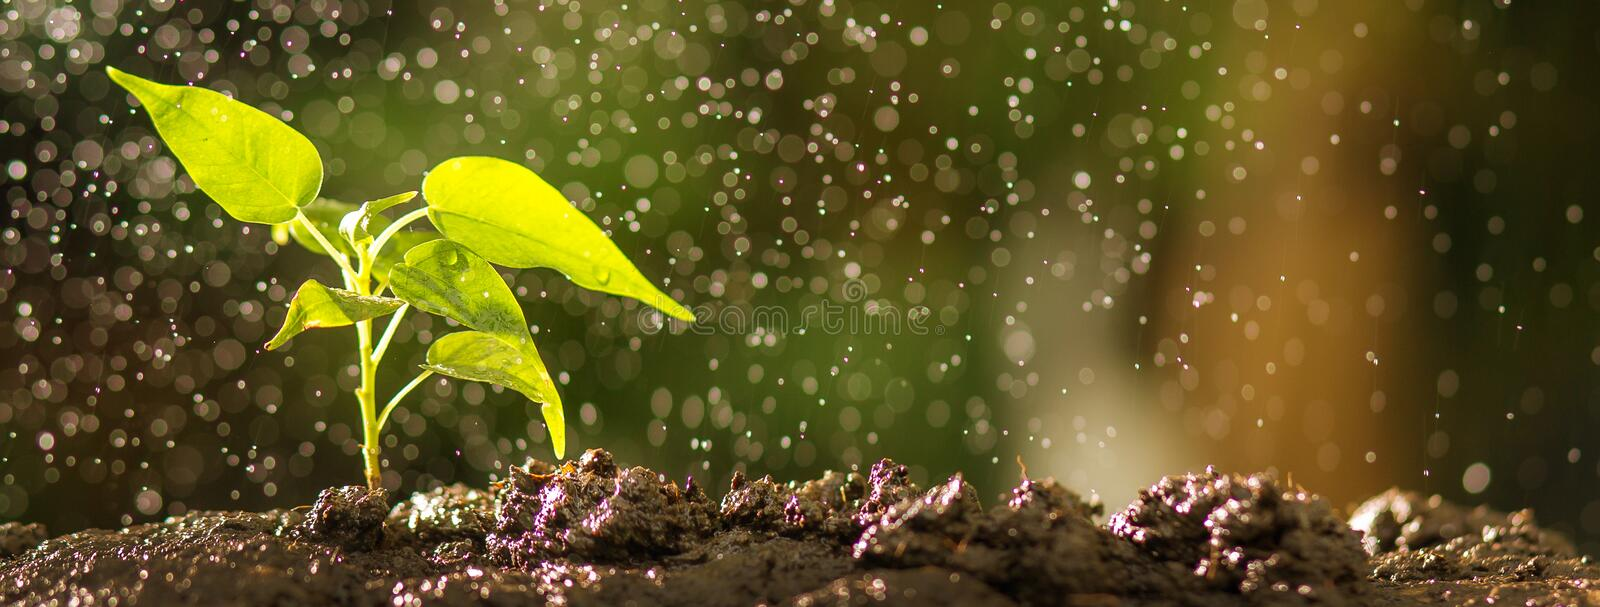 Close up of young tree on soil with water drop effect. Growing seed and planting concept, Banner with copyspace. stock images